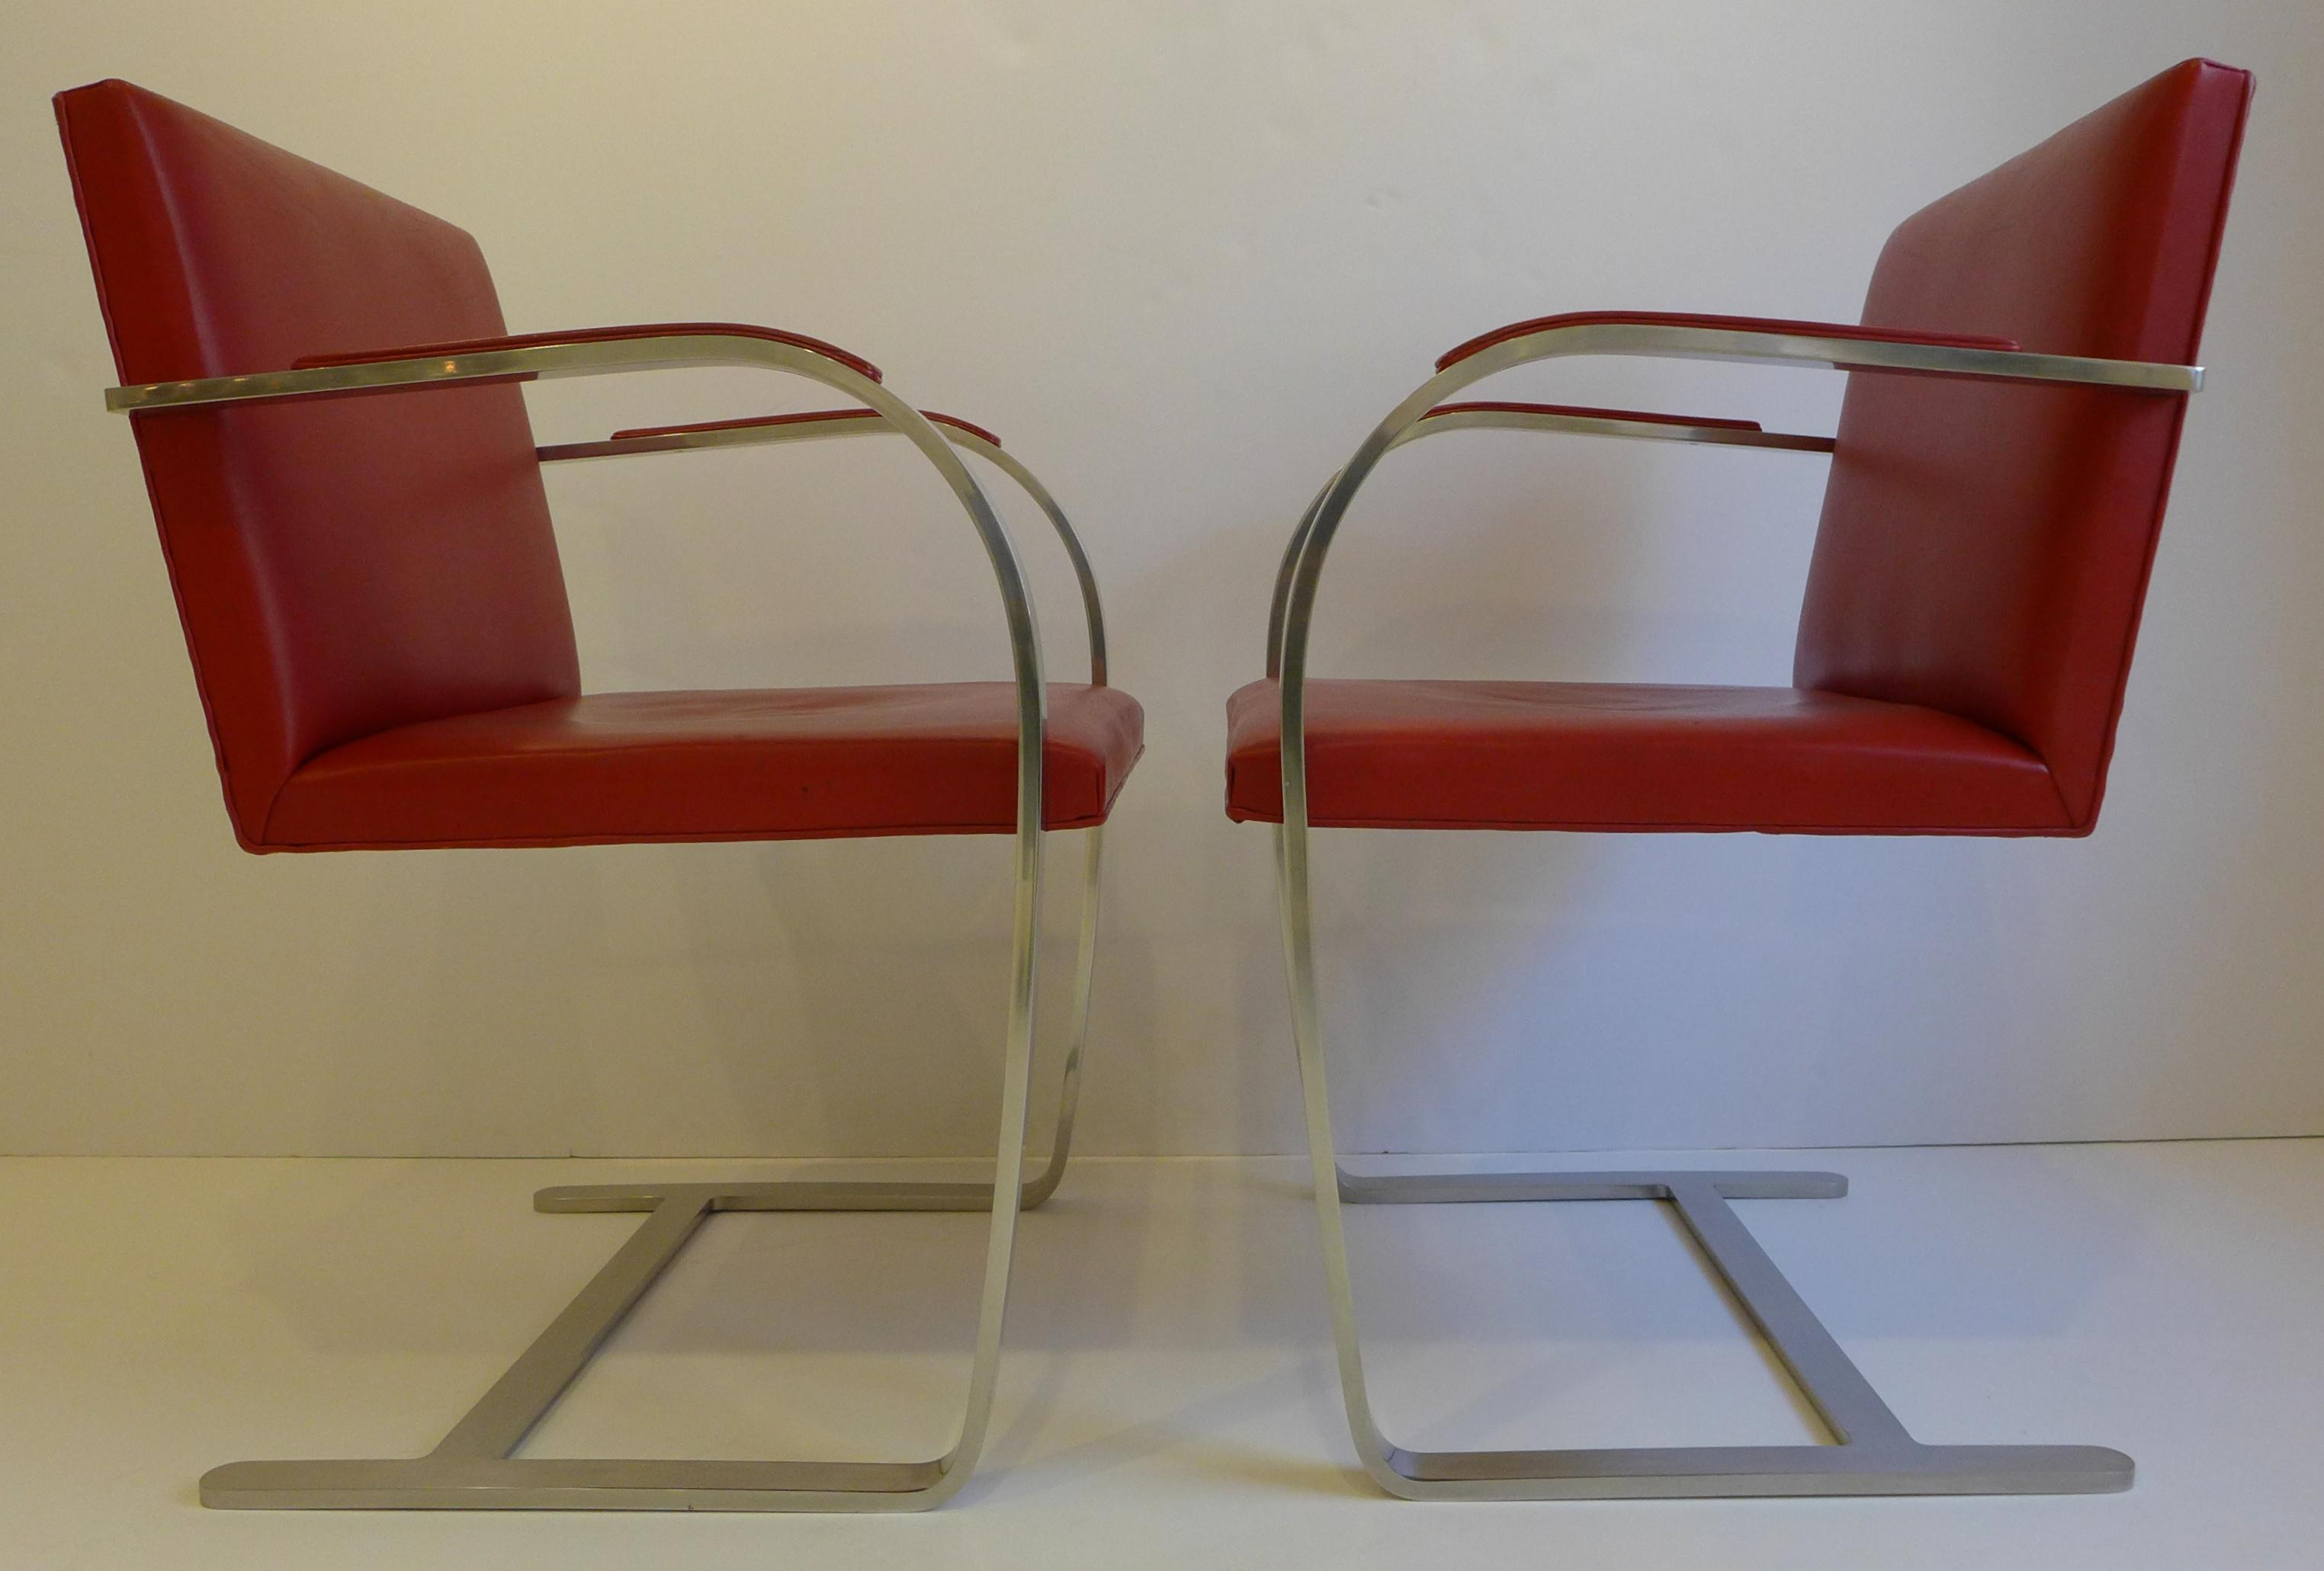 Beau Knoll International Vintage Pair Of Knoll Brno Chairs In Red Leather For  Sale   Image 4